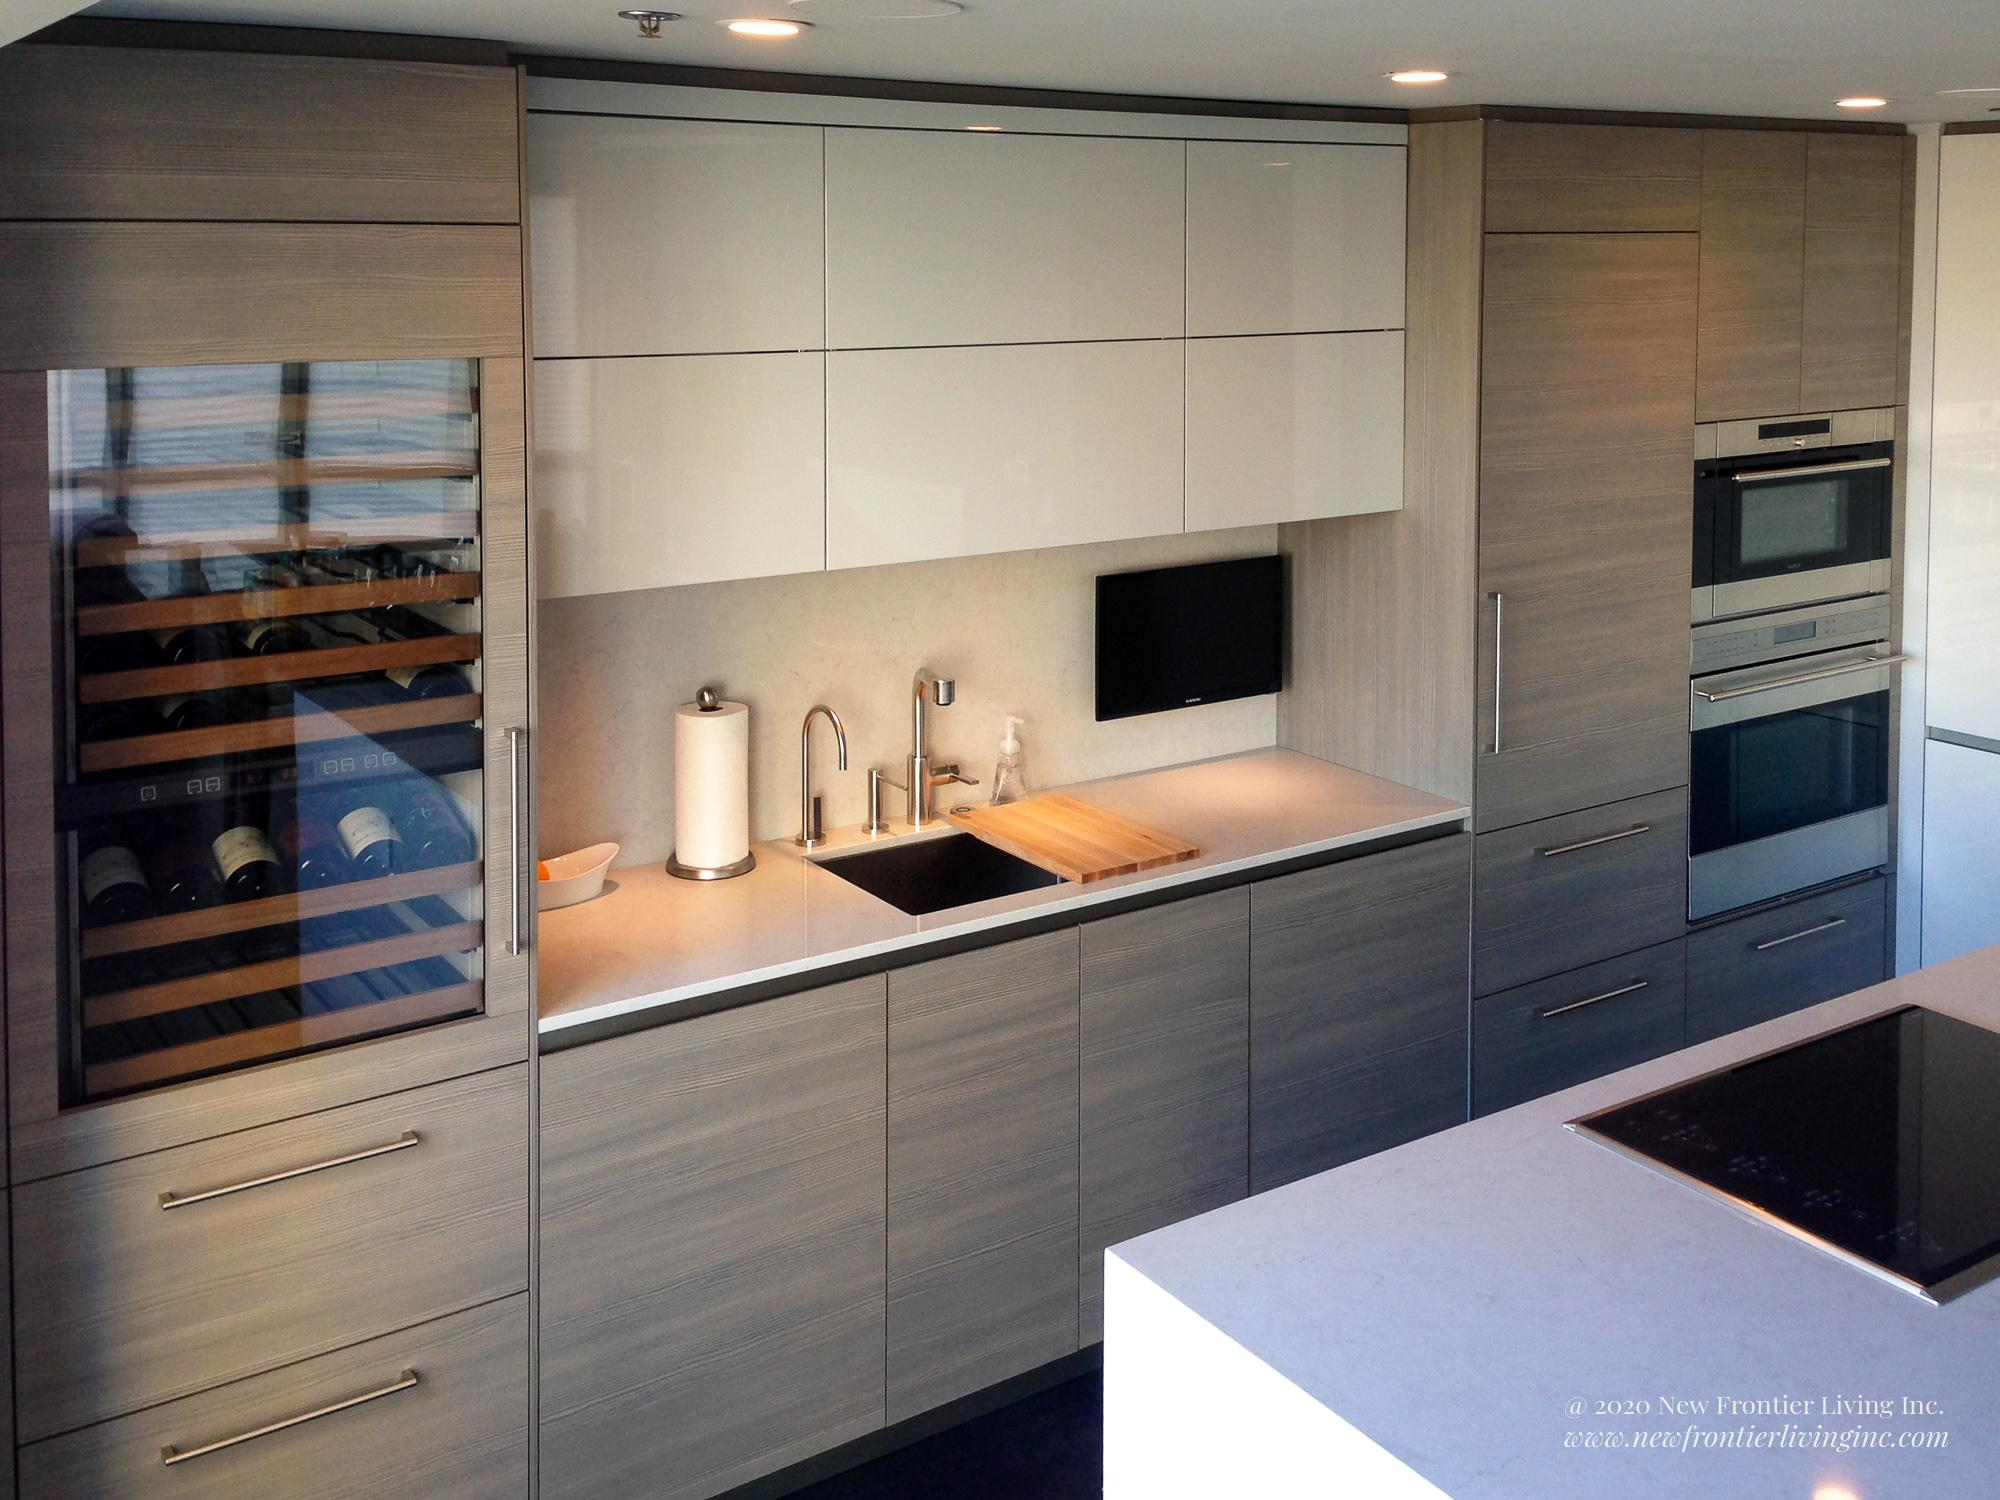 Light wood kitchen cabinetry with wine cooler